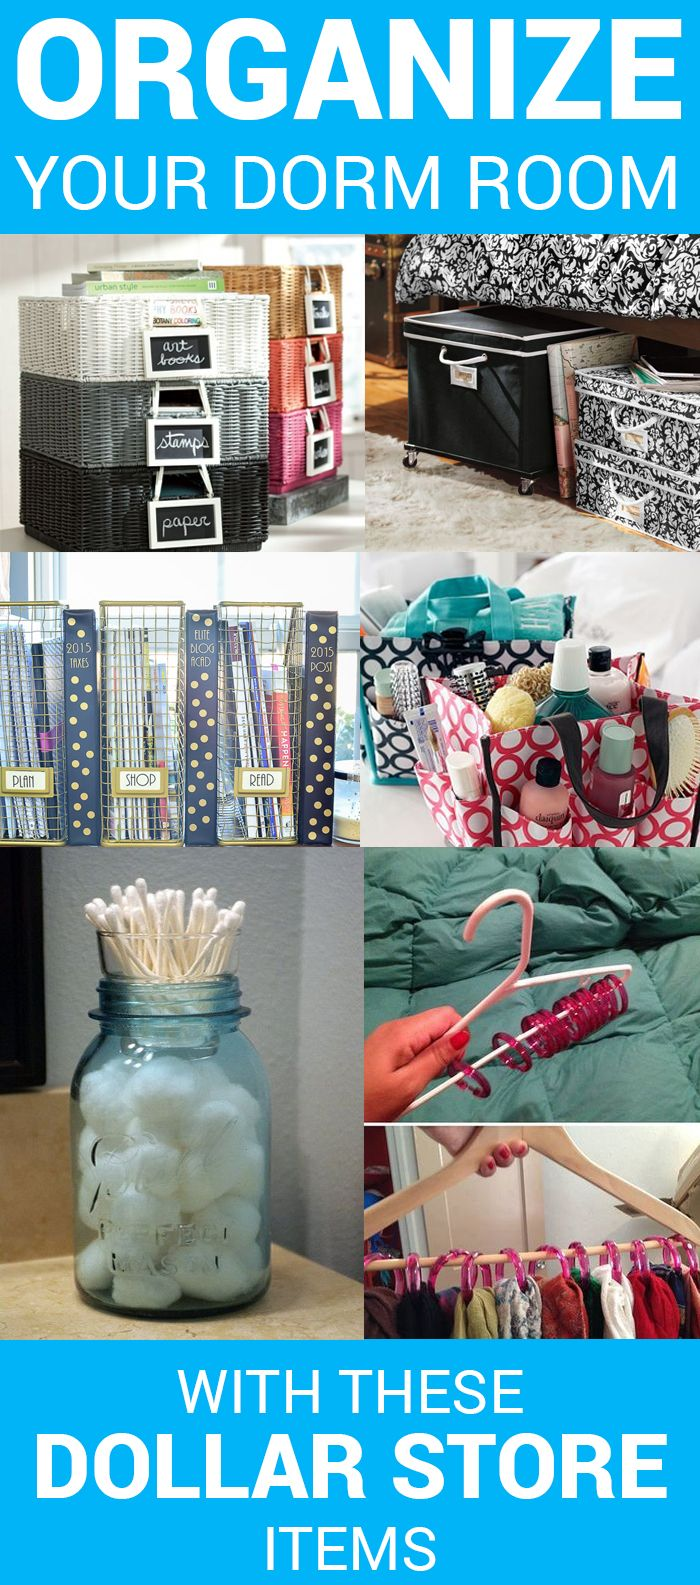 Fashion style 3 products must-have for dorm room organization for lady